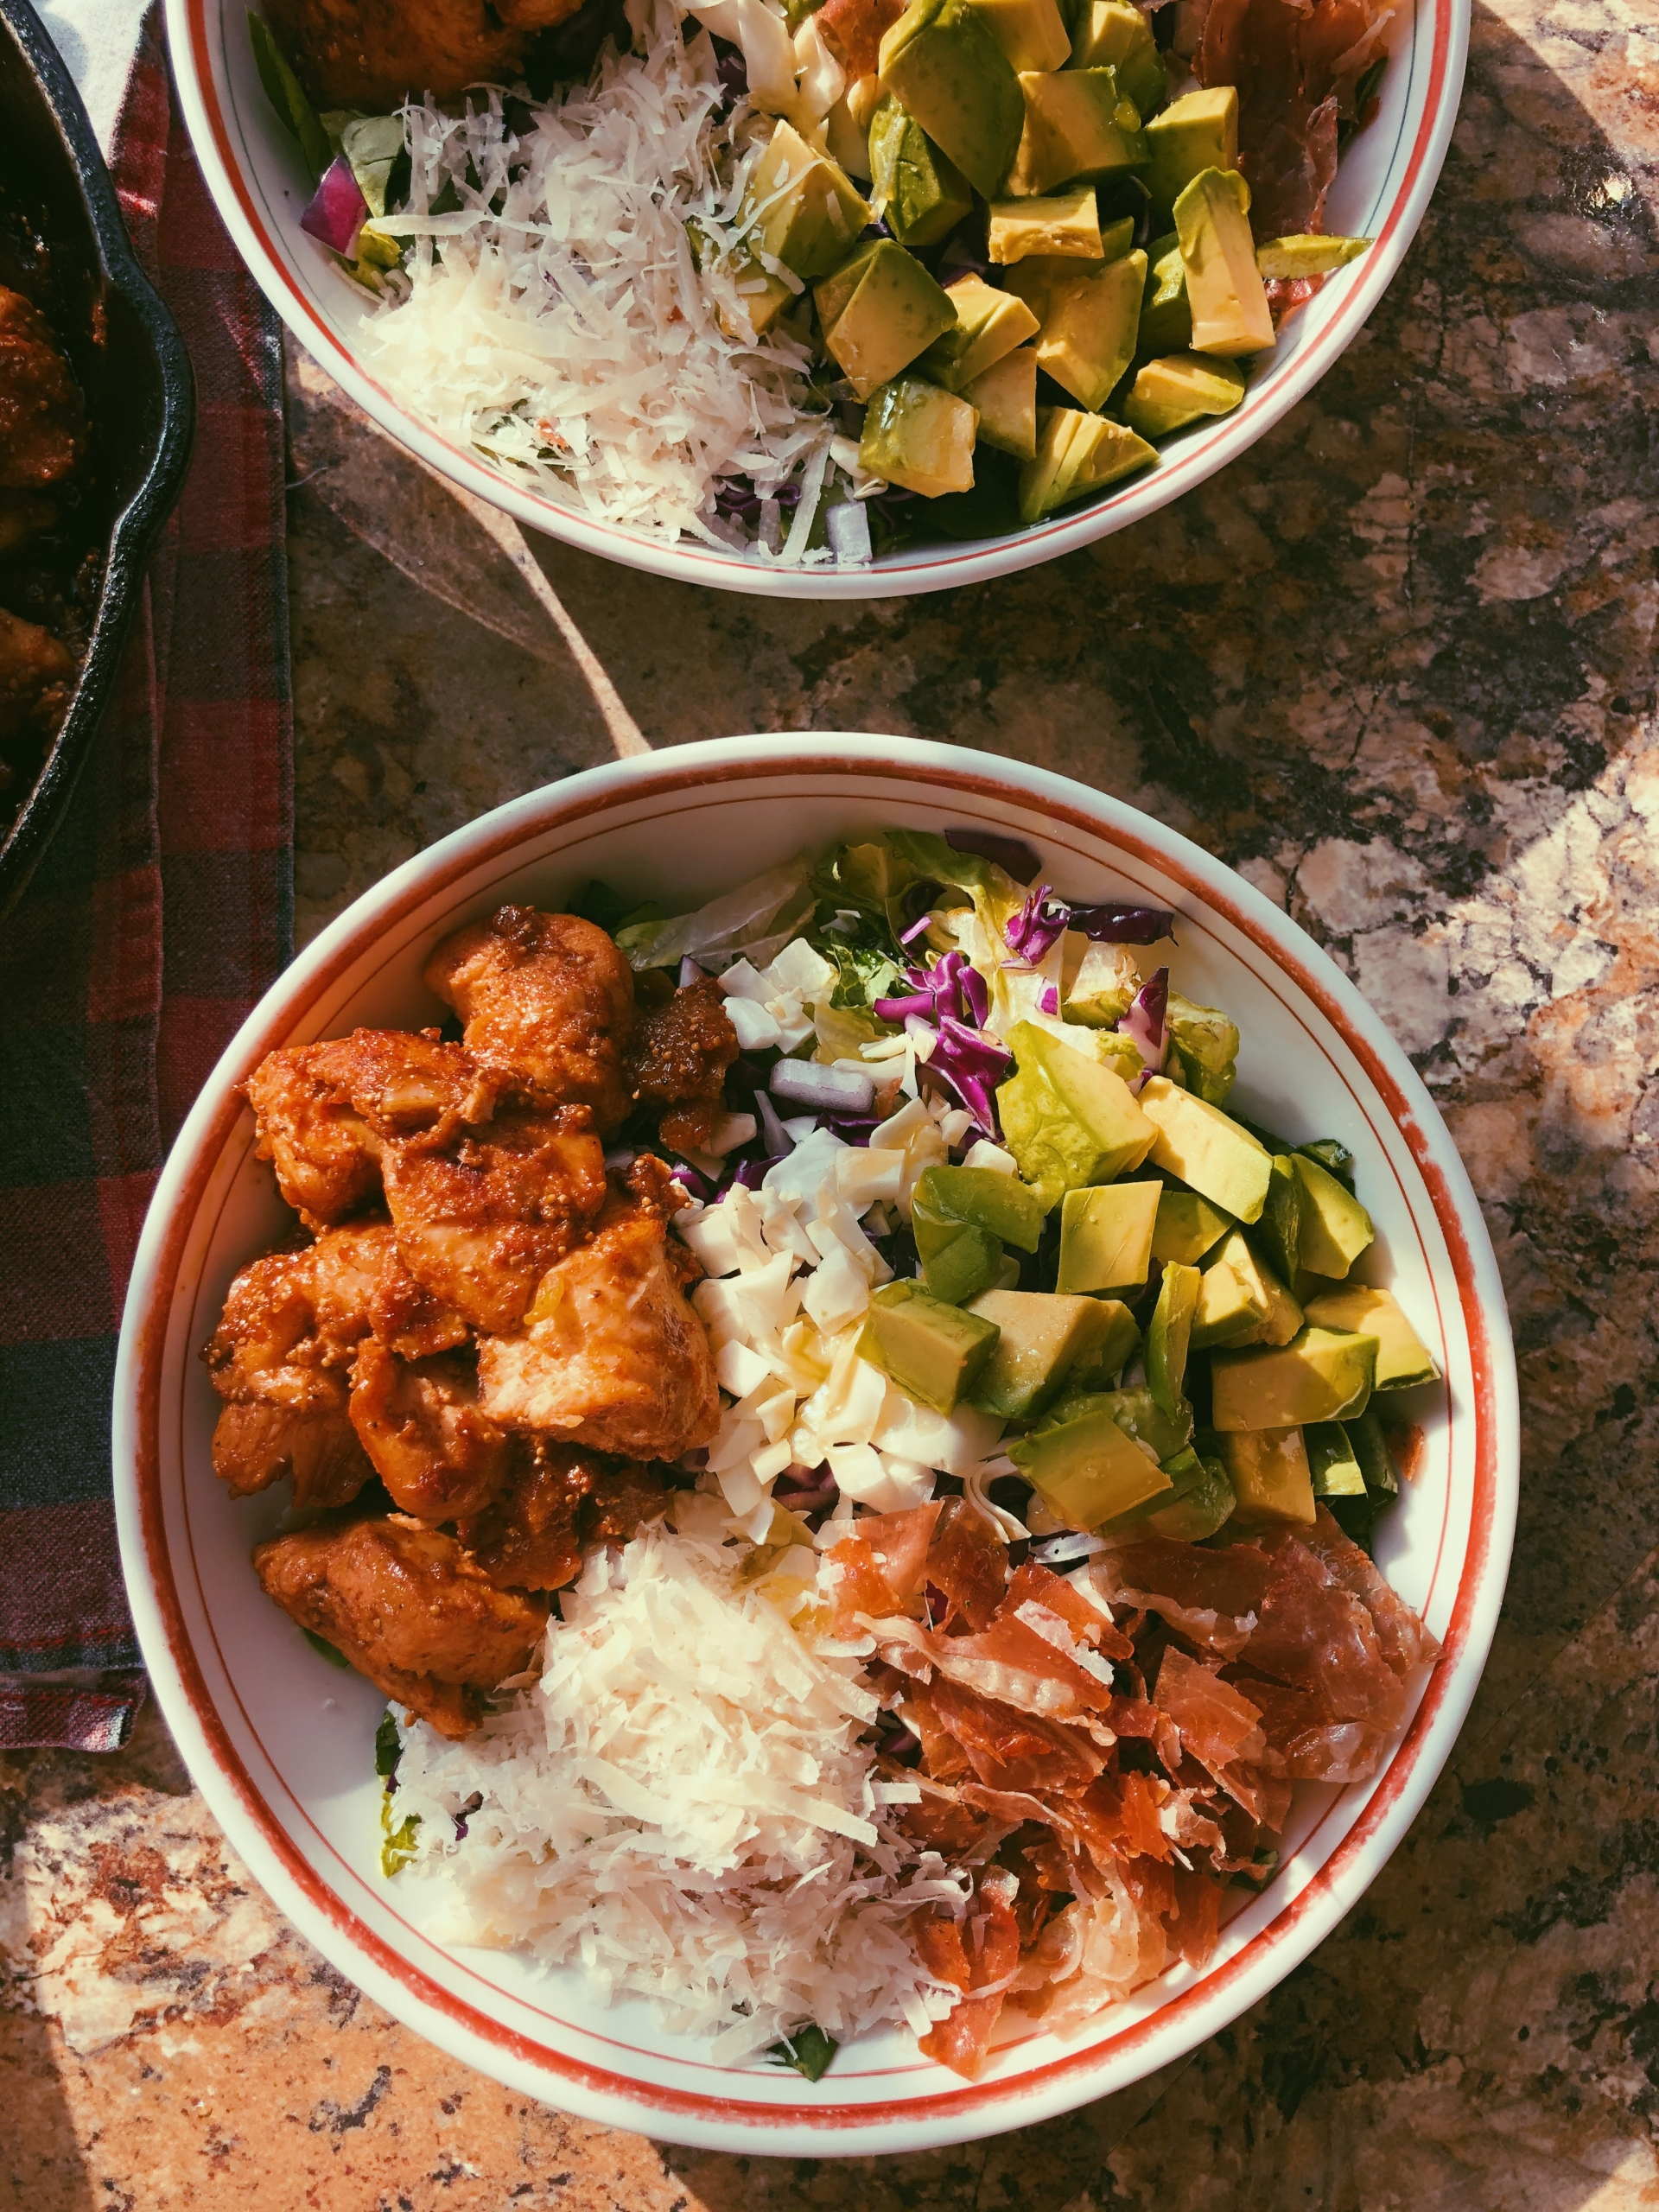 figgy pan-fried chicken and prosciutto with avocado salad